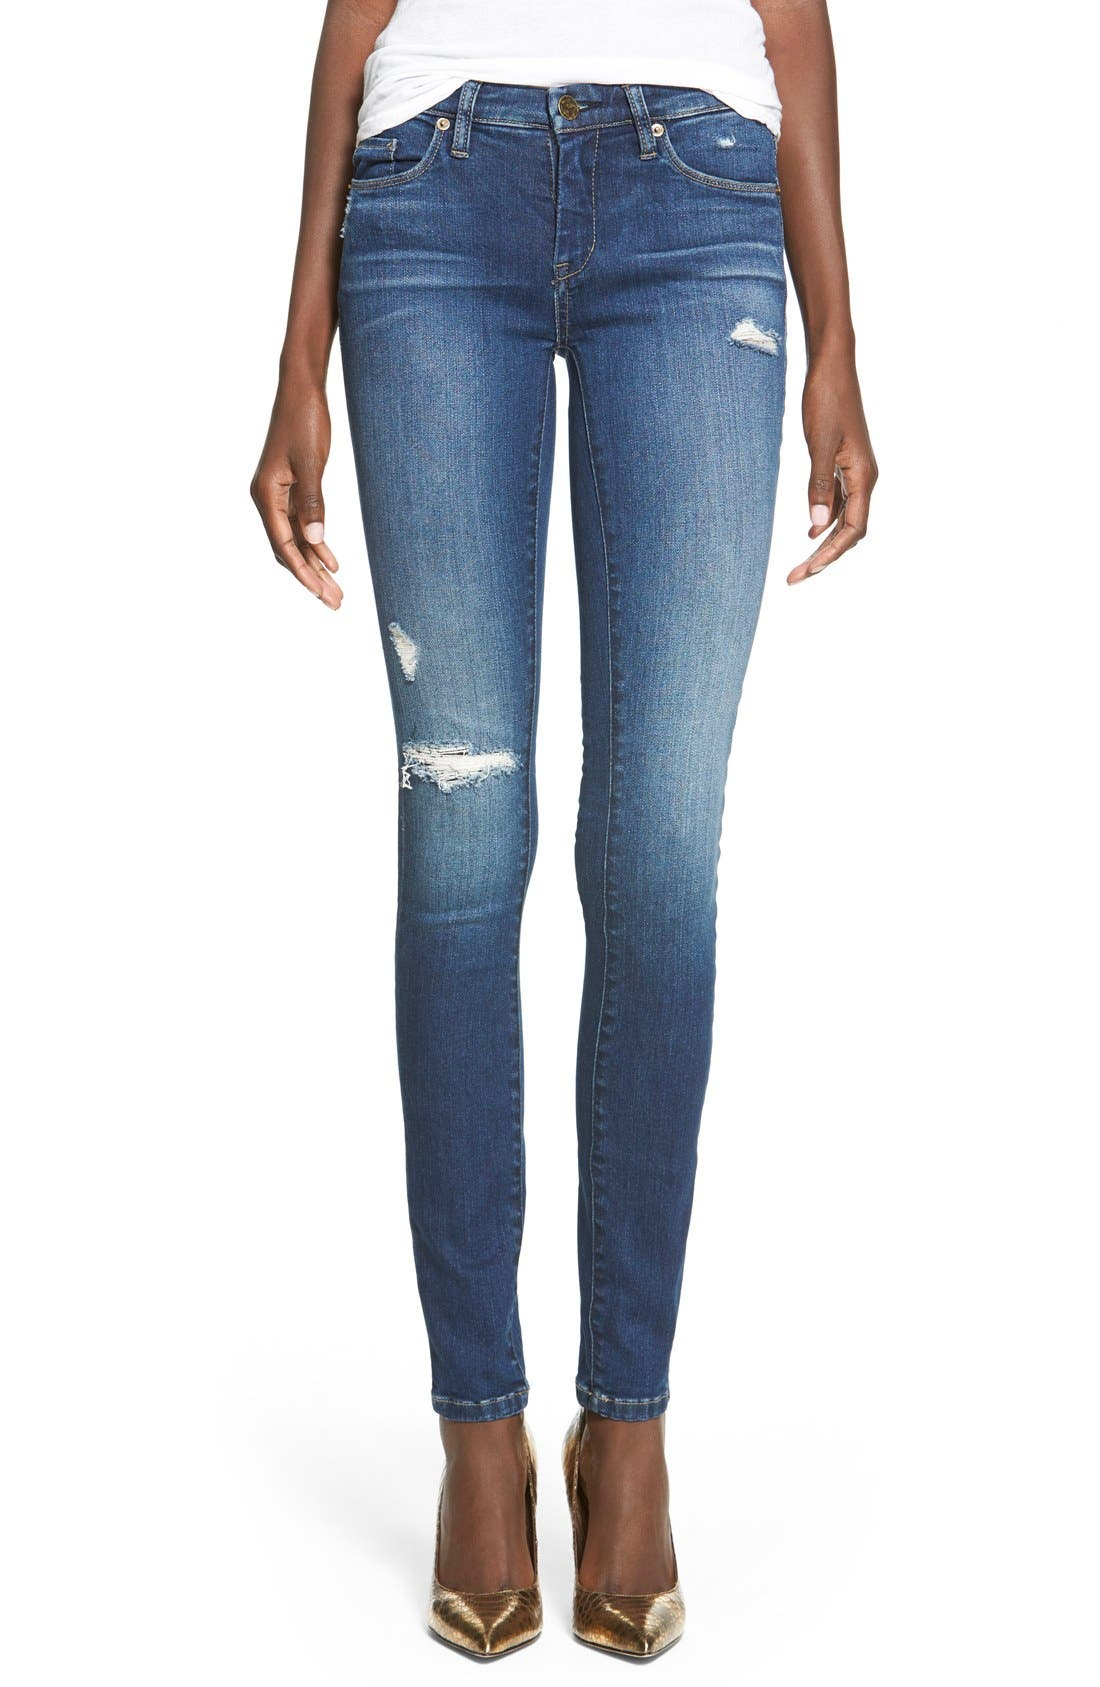 BLANKNYC, 'Hotel' Distressed Skinny Jeans, Main thumbnail 1, color, 400